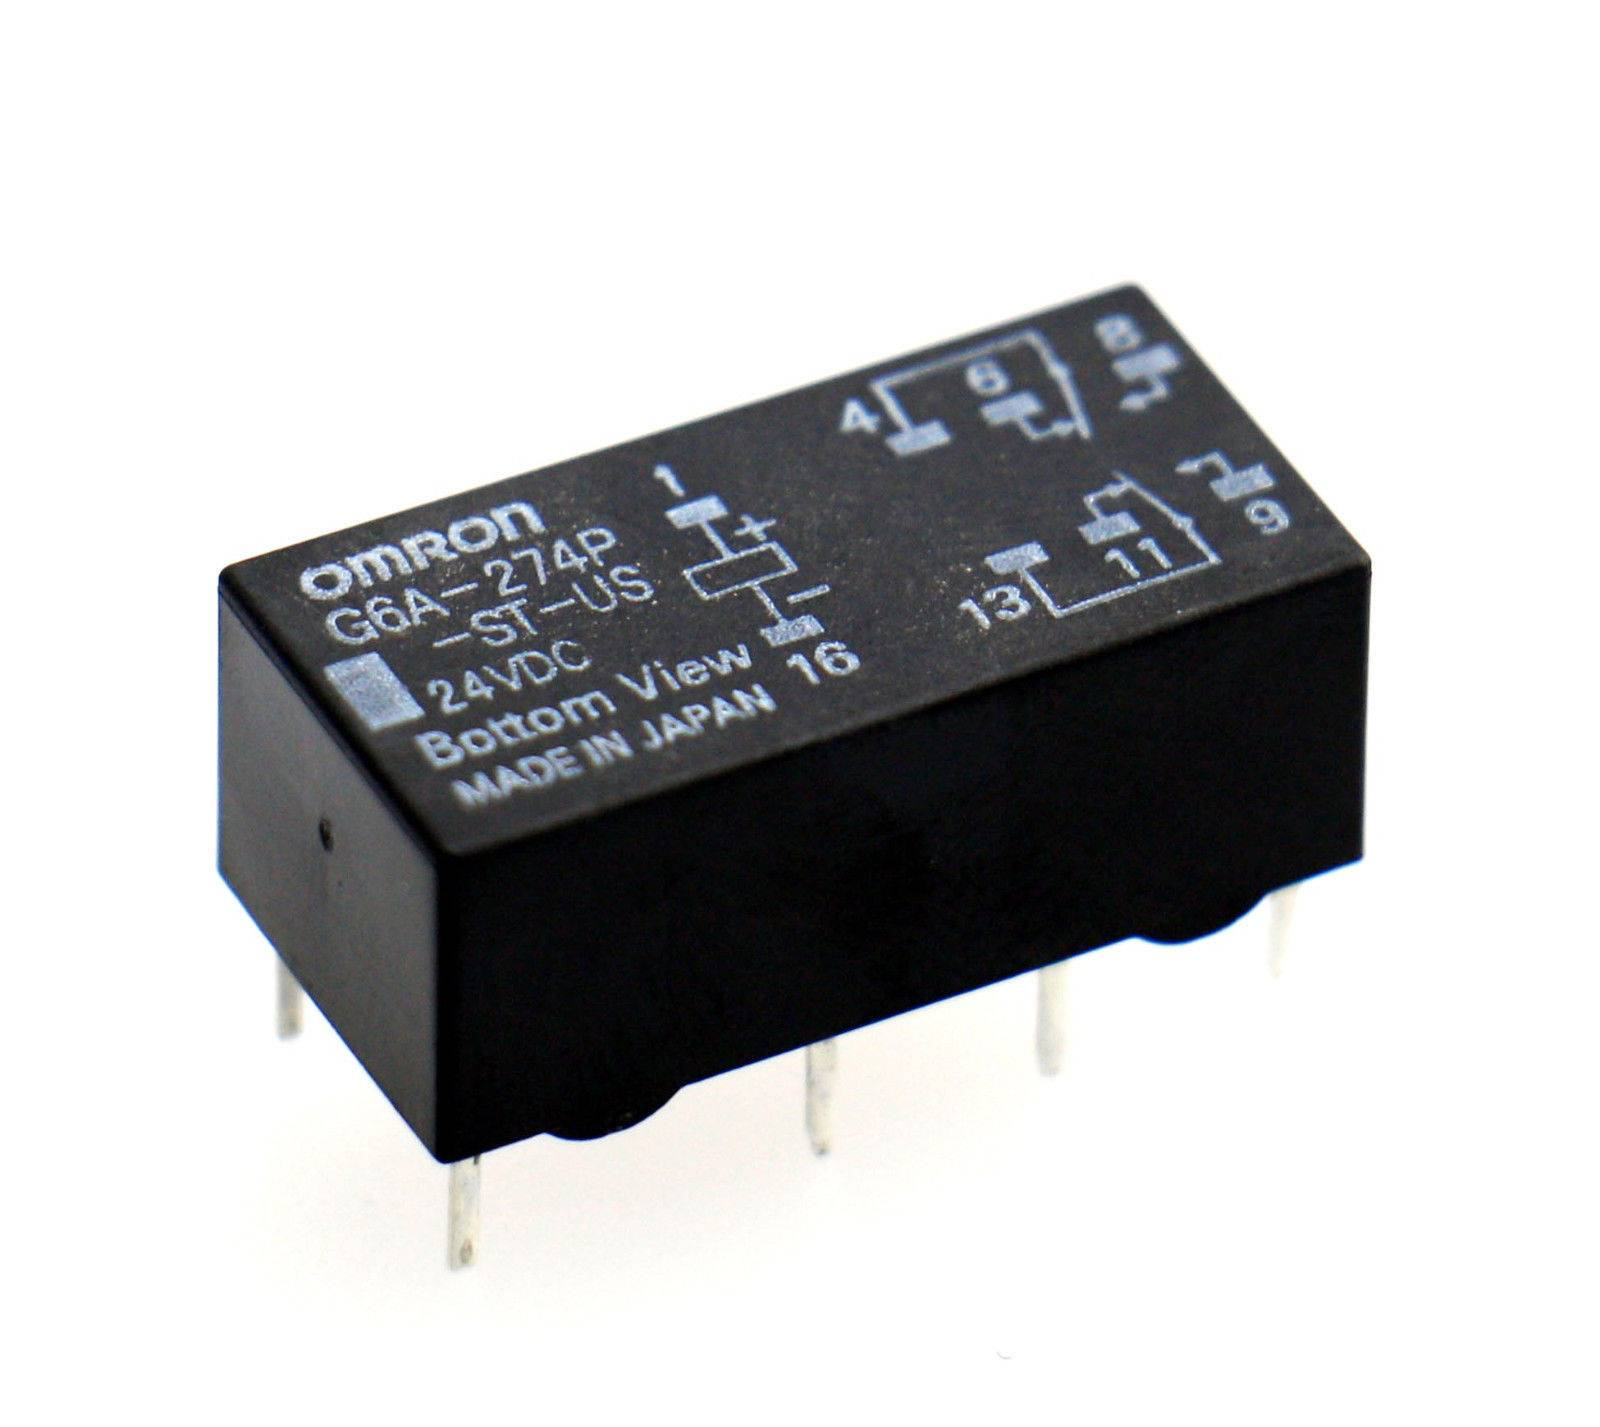 OMRON G6A-274P-ST-US 24VDC 0.5A/125VAC Low Signal Relay